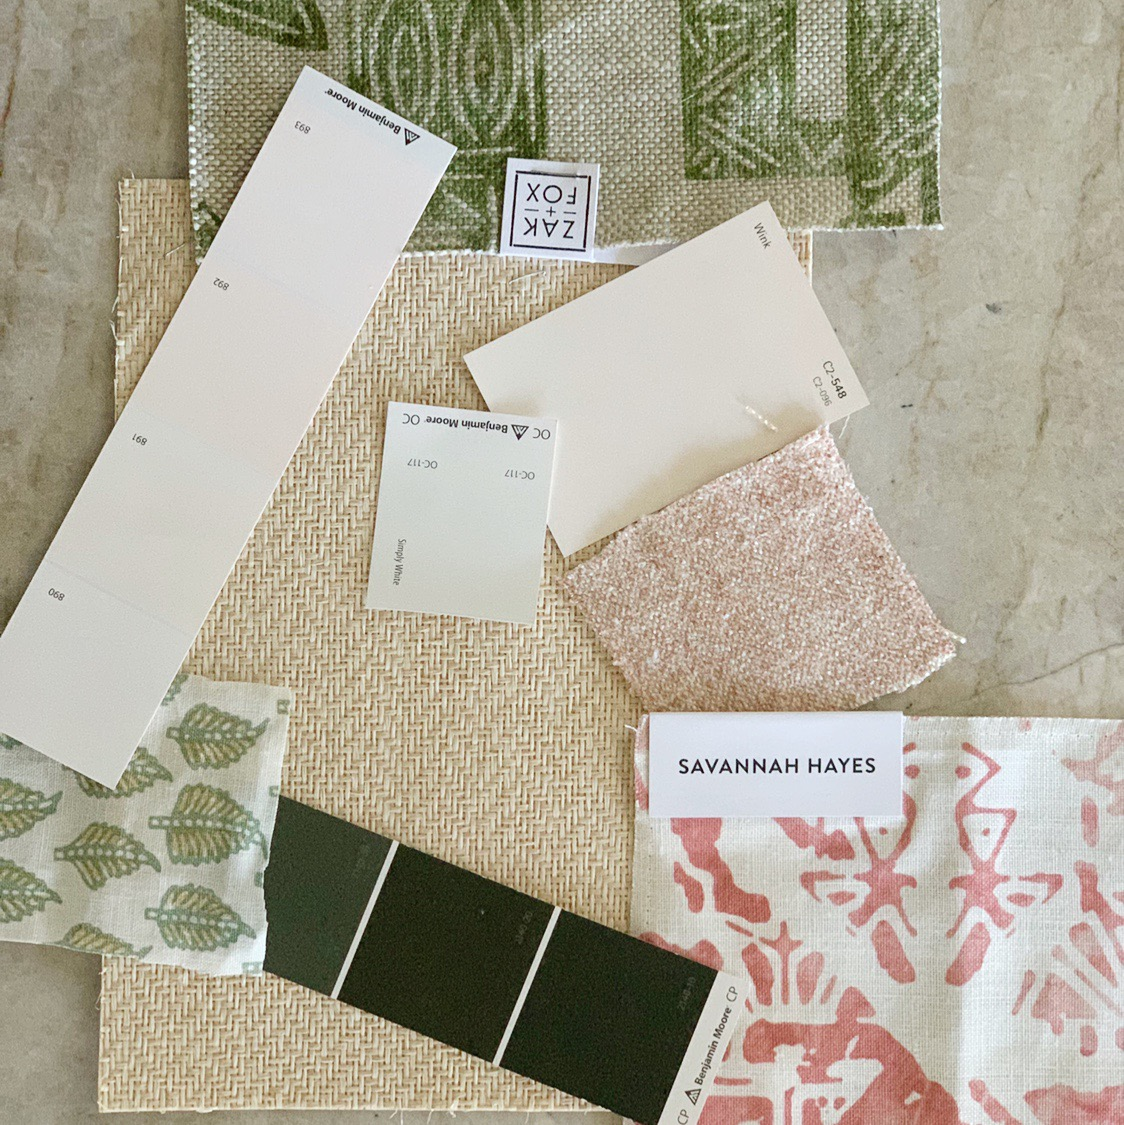 Scheming with fabrics, grasscloth, and paint!